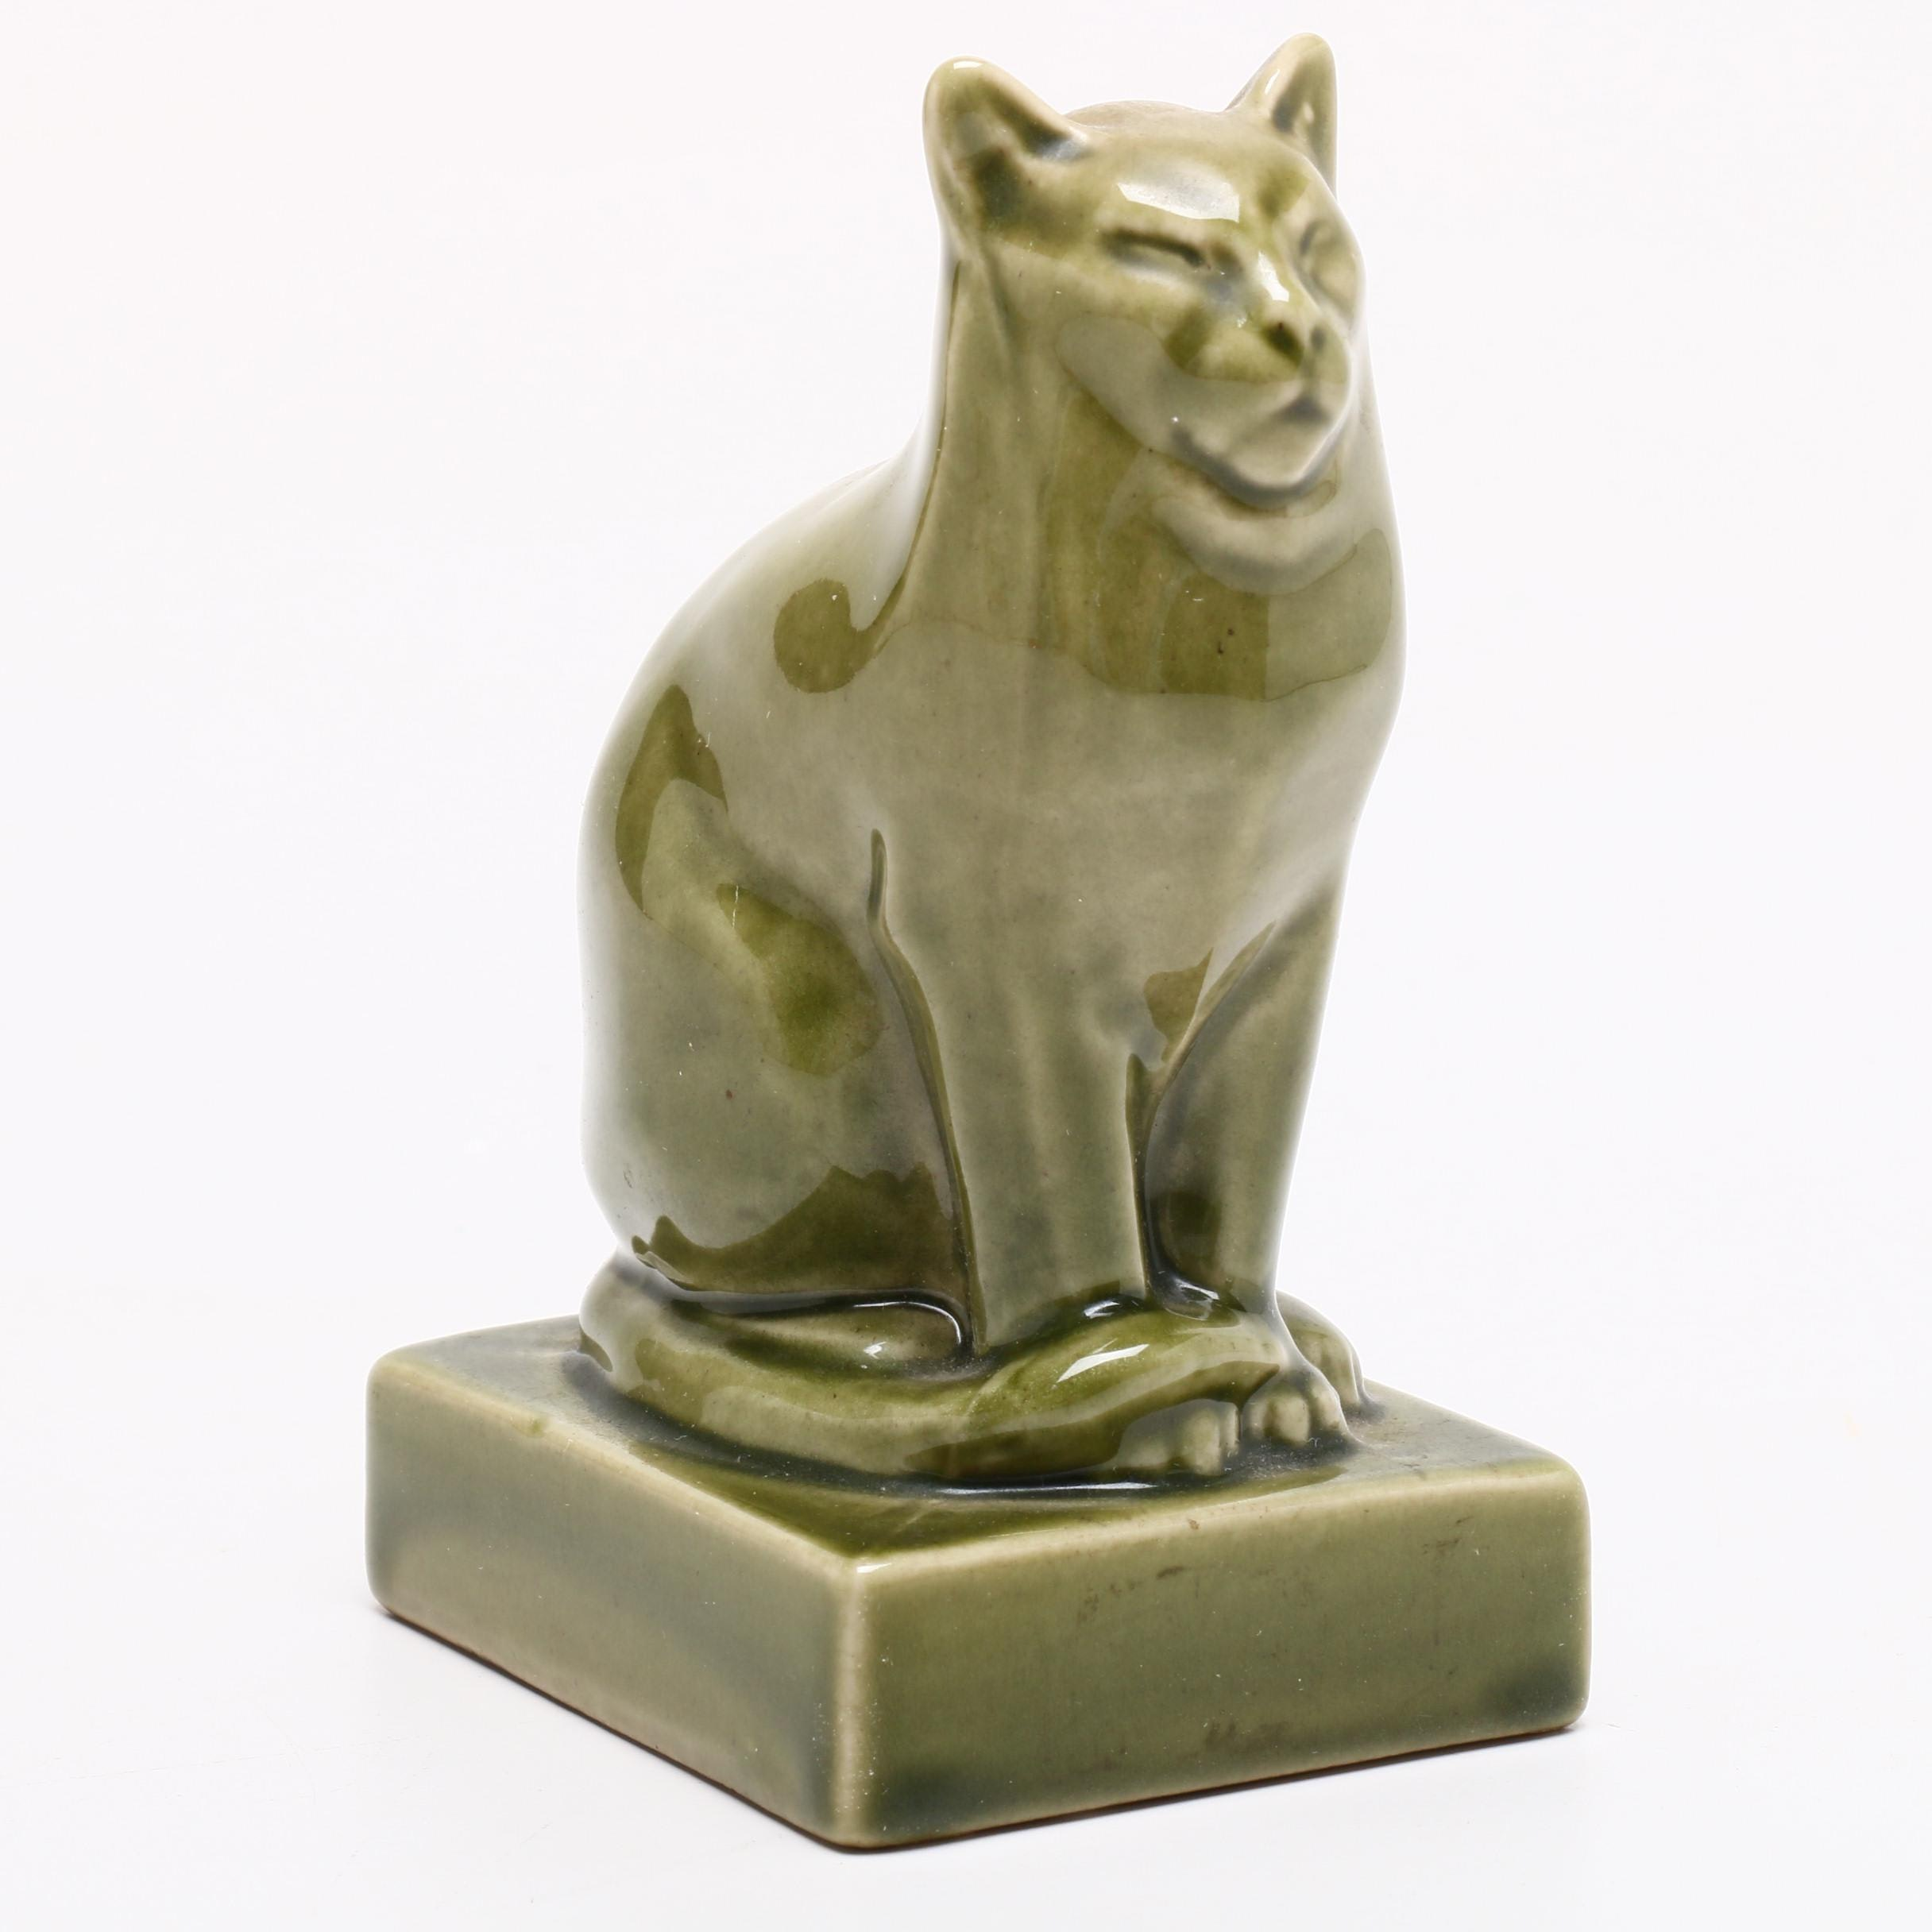 Rookwood Pottery Cat Paperweight, 1965